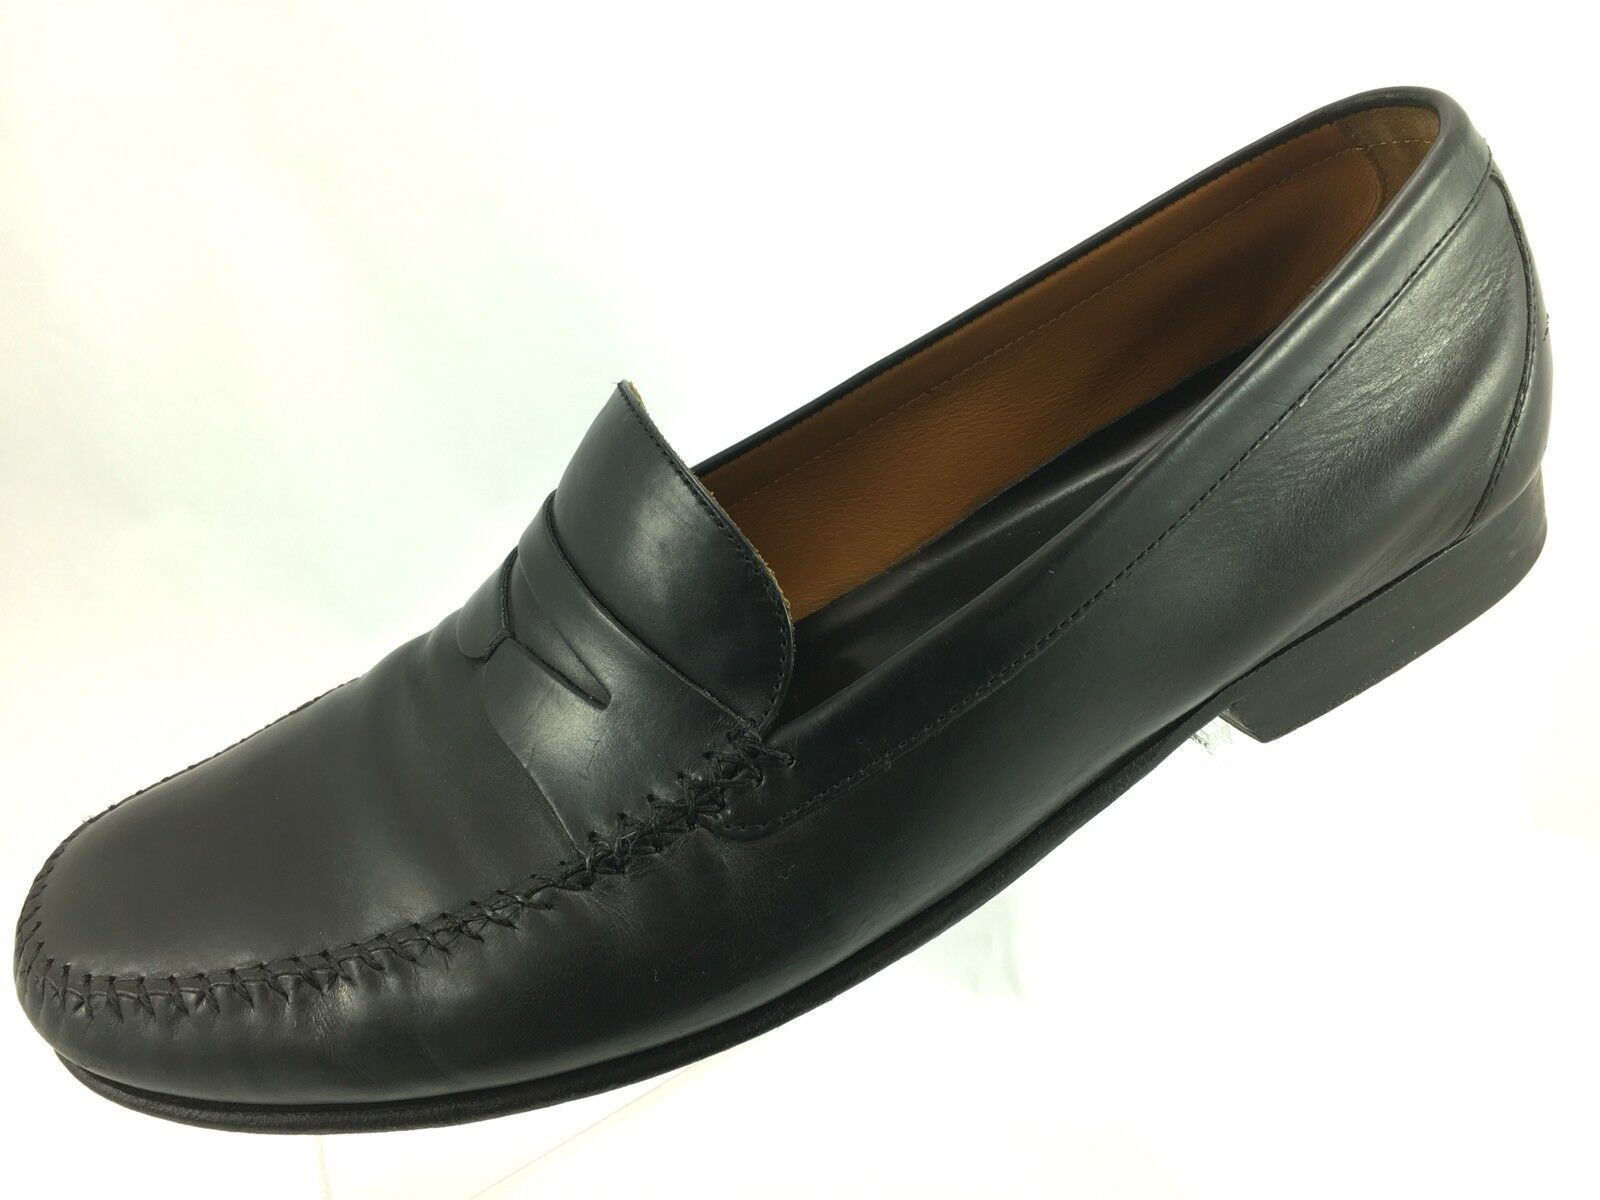 SH20 Cole Haan Penny Resort 10.5D Black Leather Penny Haan Loafer Shoes 2c3961